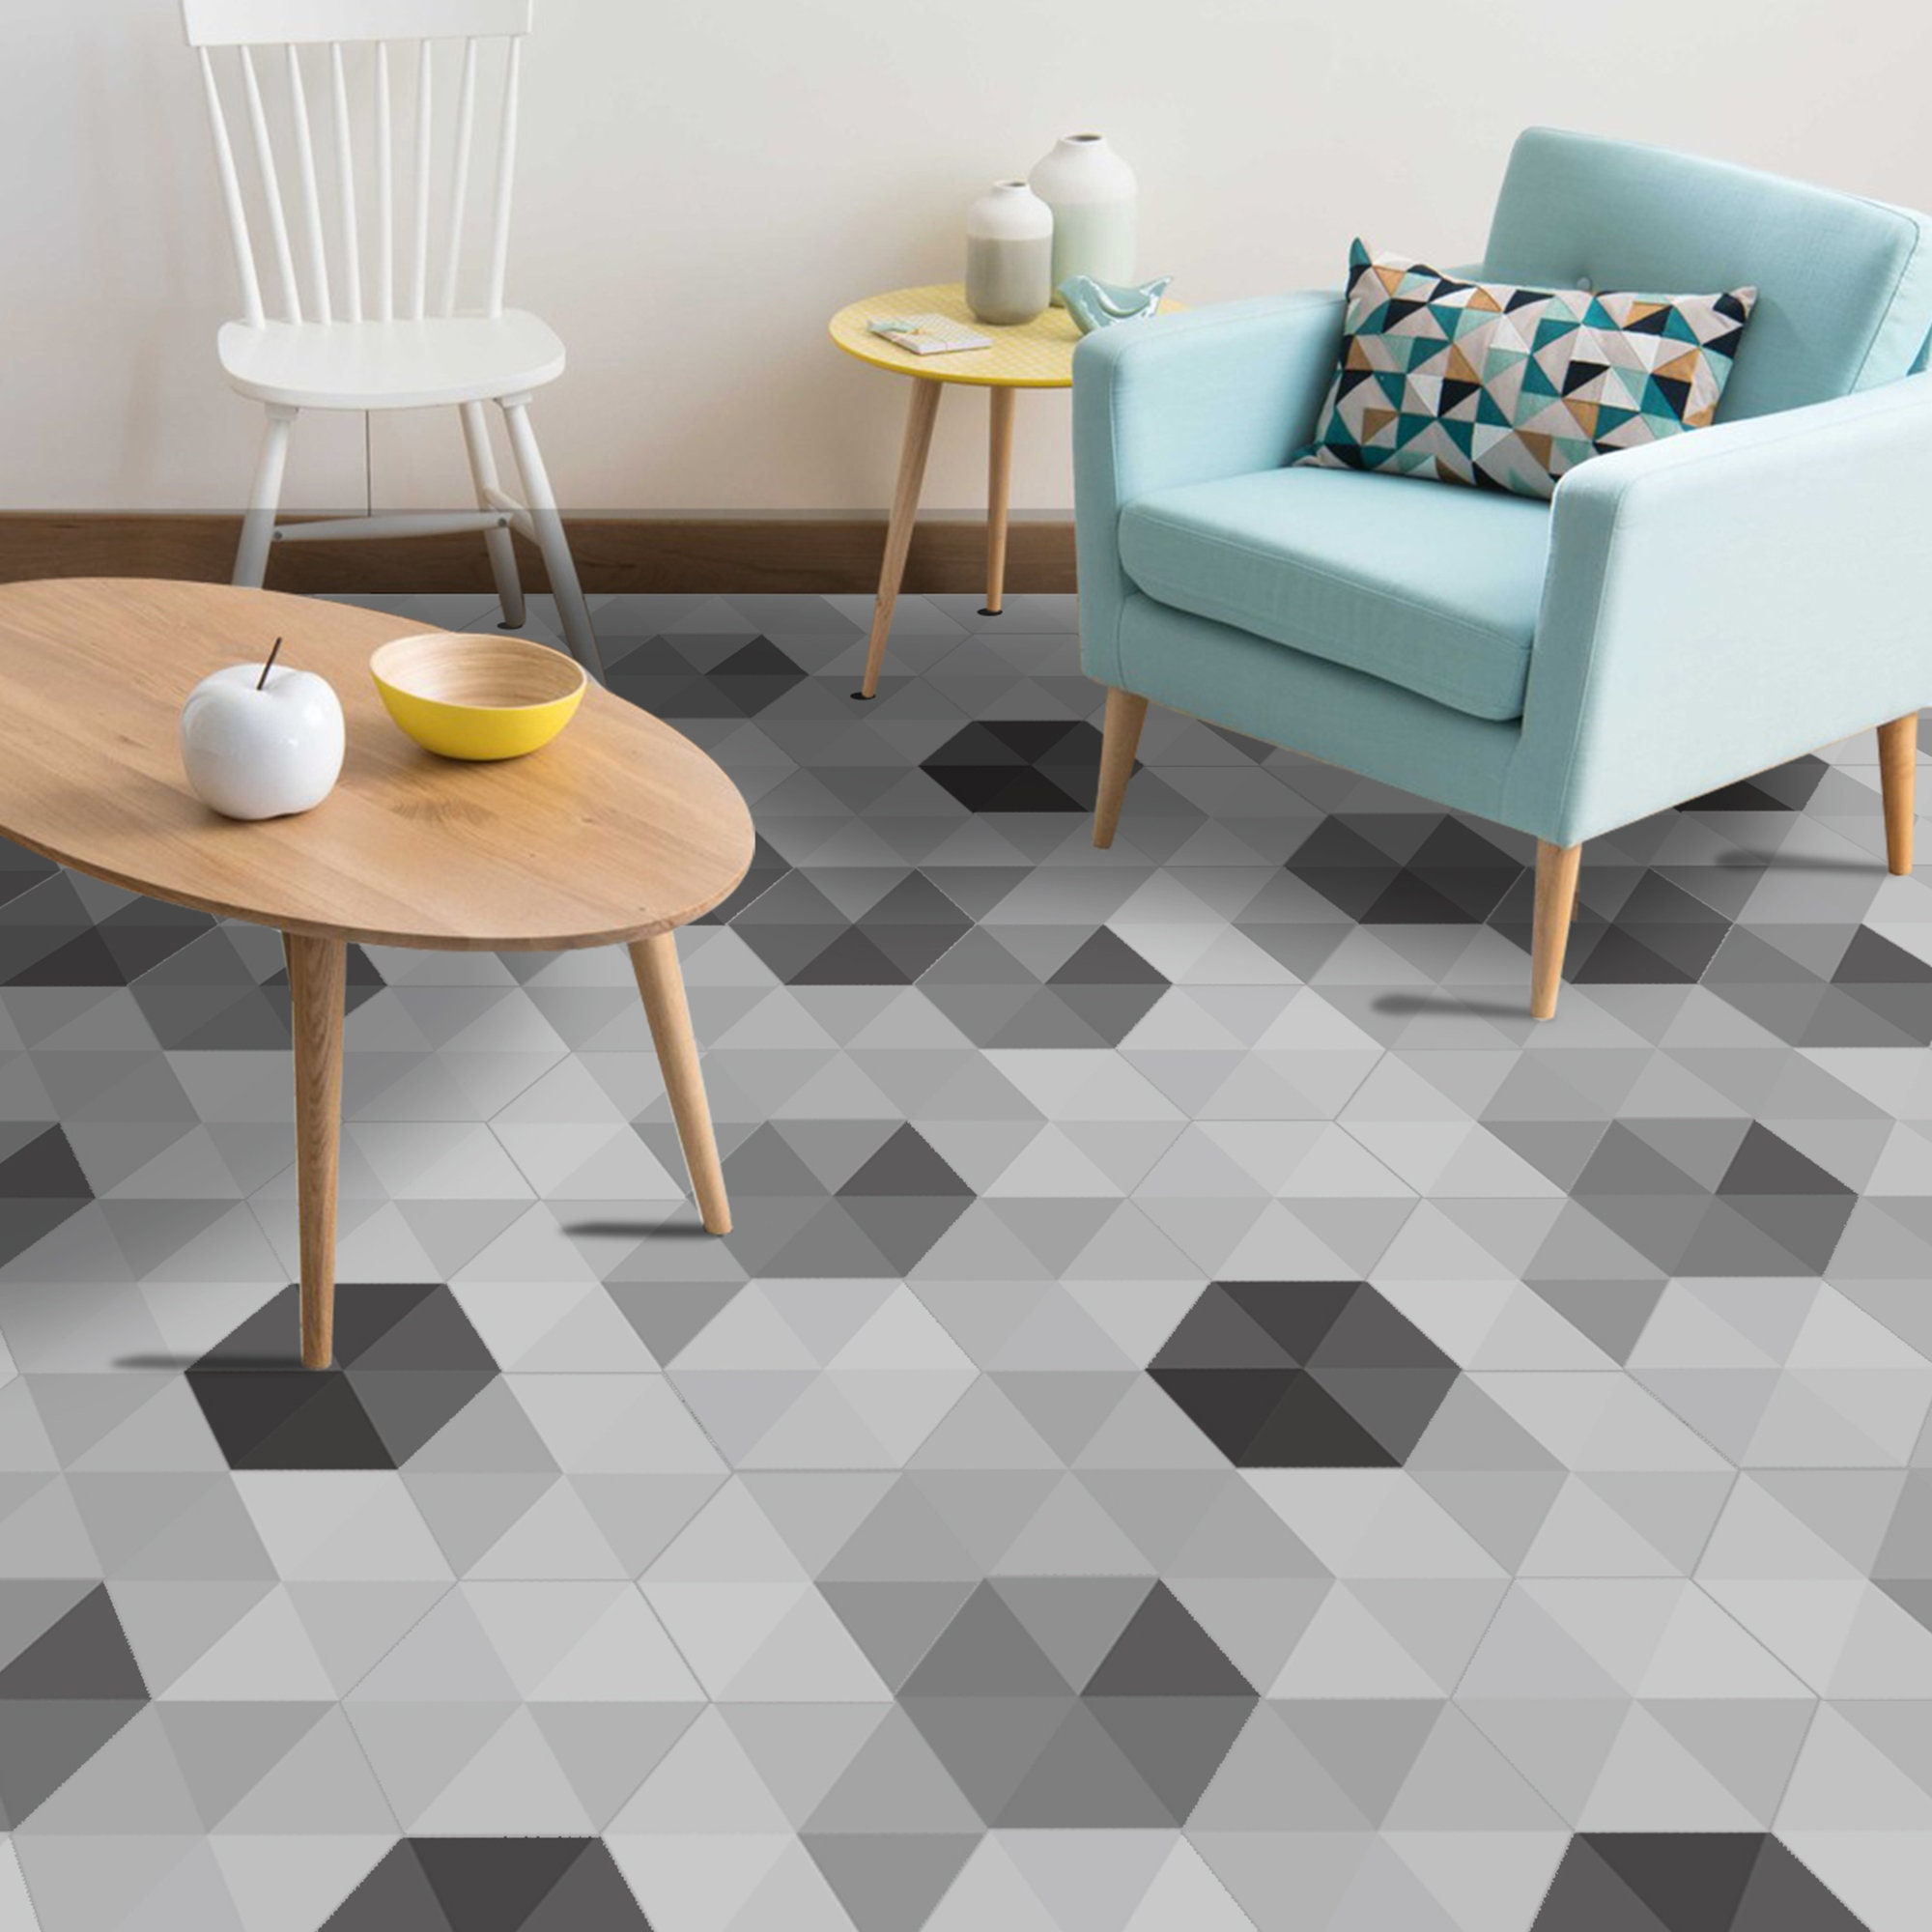 Carrelage Mural Metro Adhesif grey shaded triangles hexagon floor tiles self-adhesive floor sticker 7.9''  x 9'' decal art home decoration vintage classic bathroom kitchen